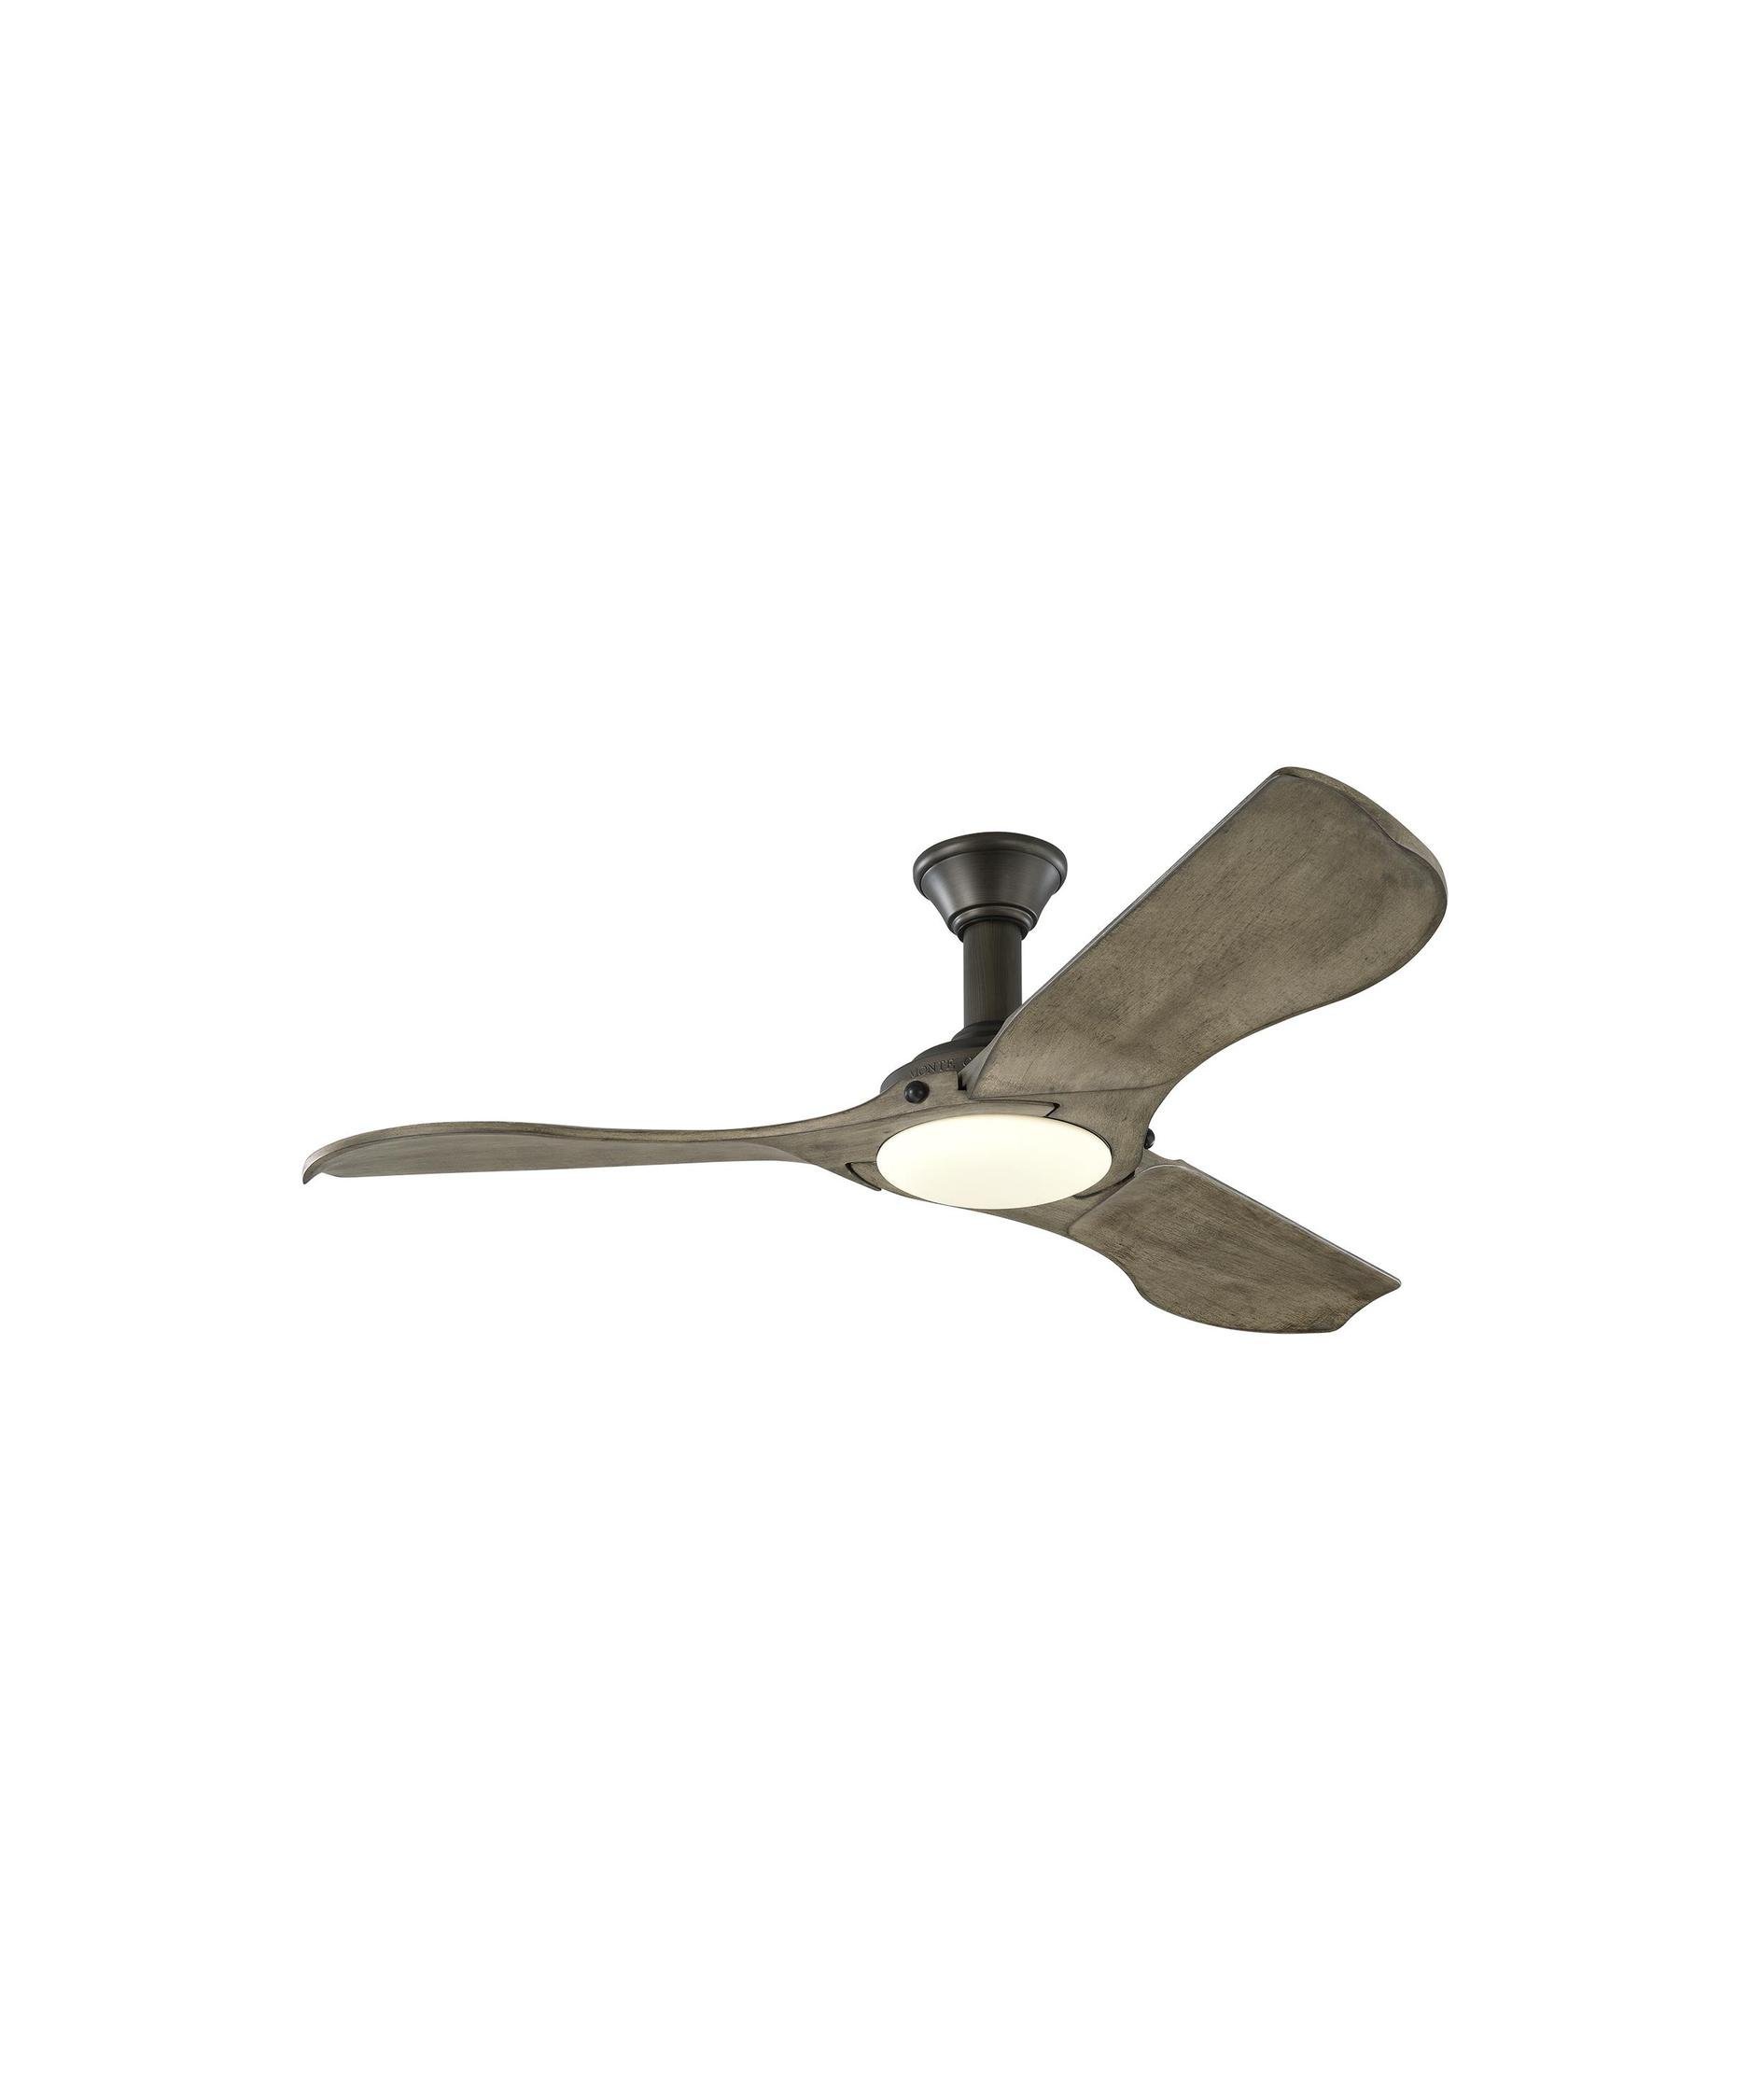 monte carlo mnlr minimalist  inch  blade ceiling fan  - shown in light grey weathered oak finish and opal etched glass